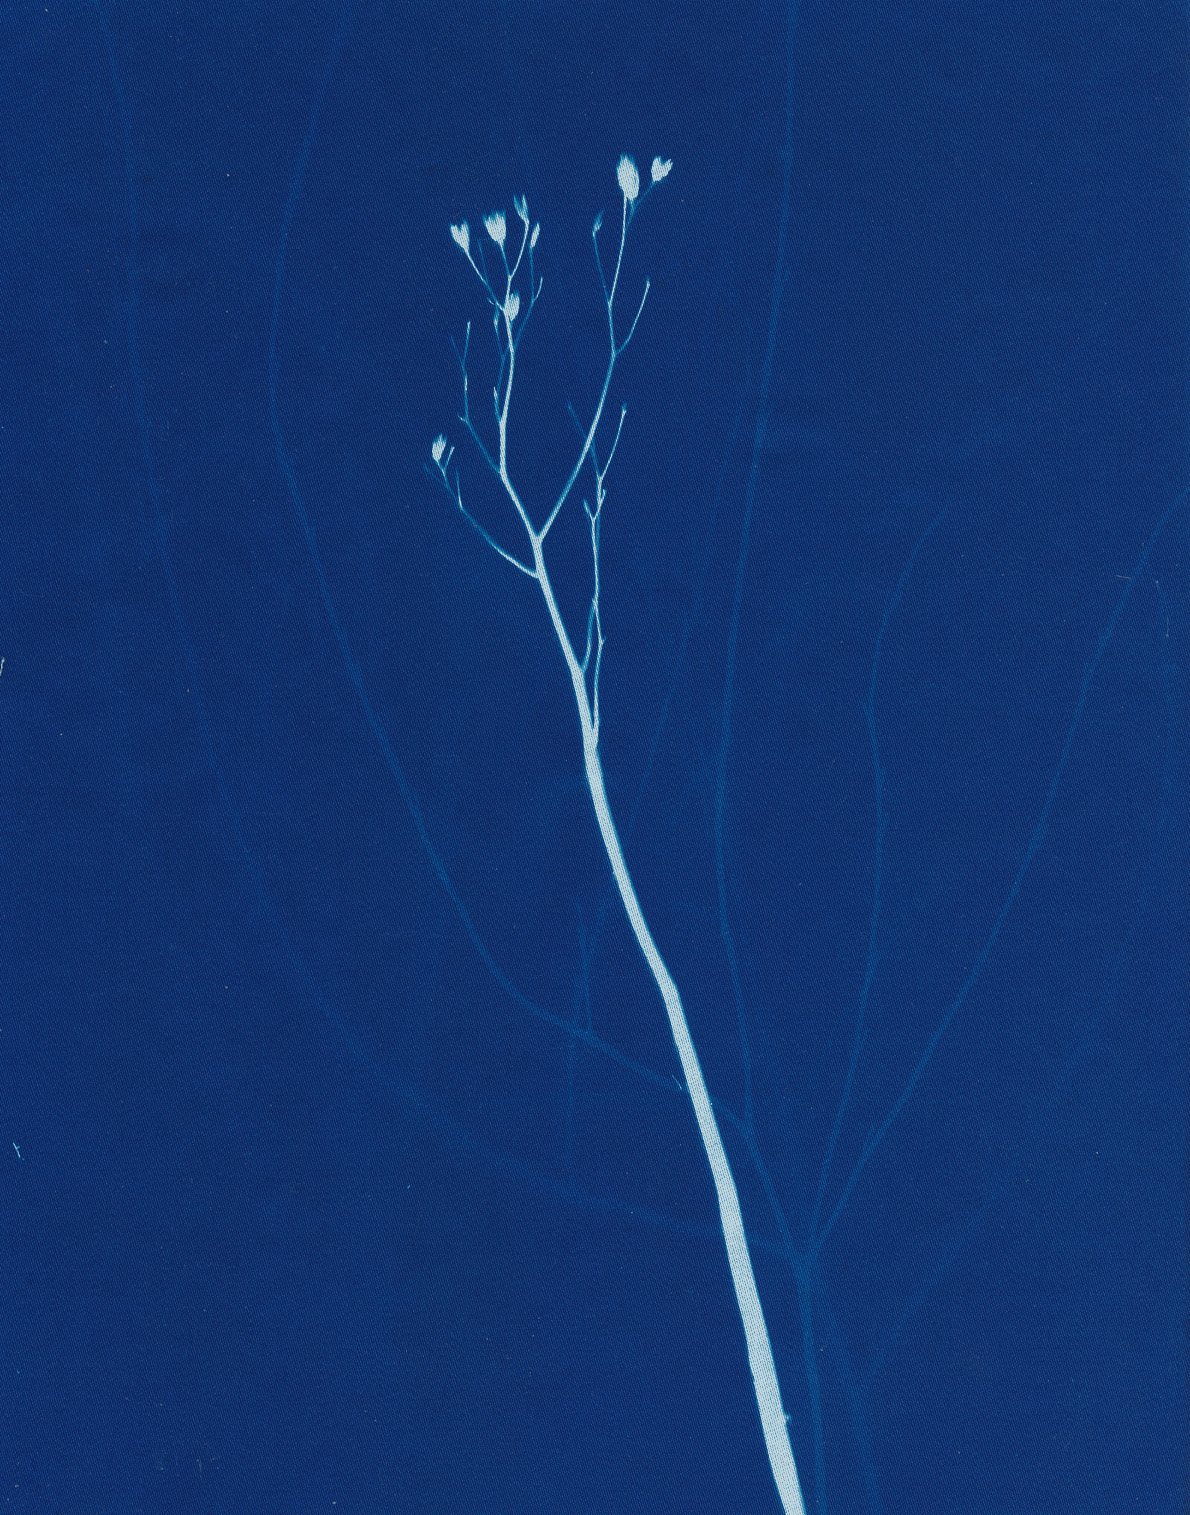 Les fleurs du silence, cyanotype on cotton fabric, Mike Tedder